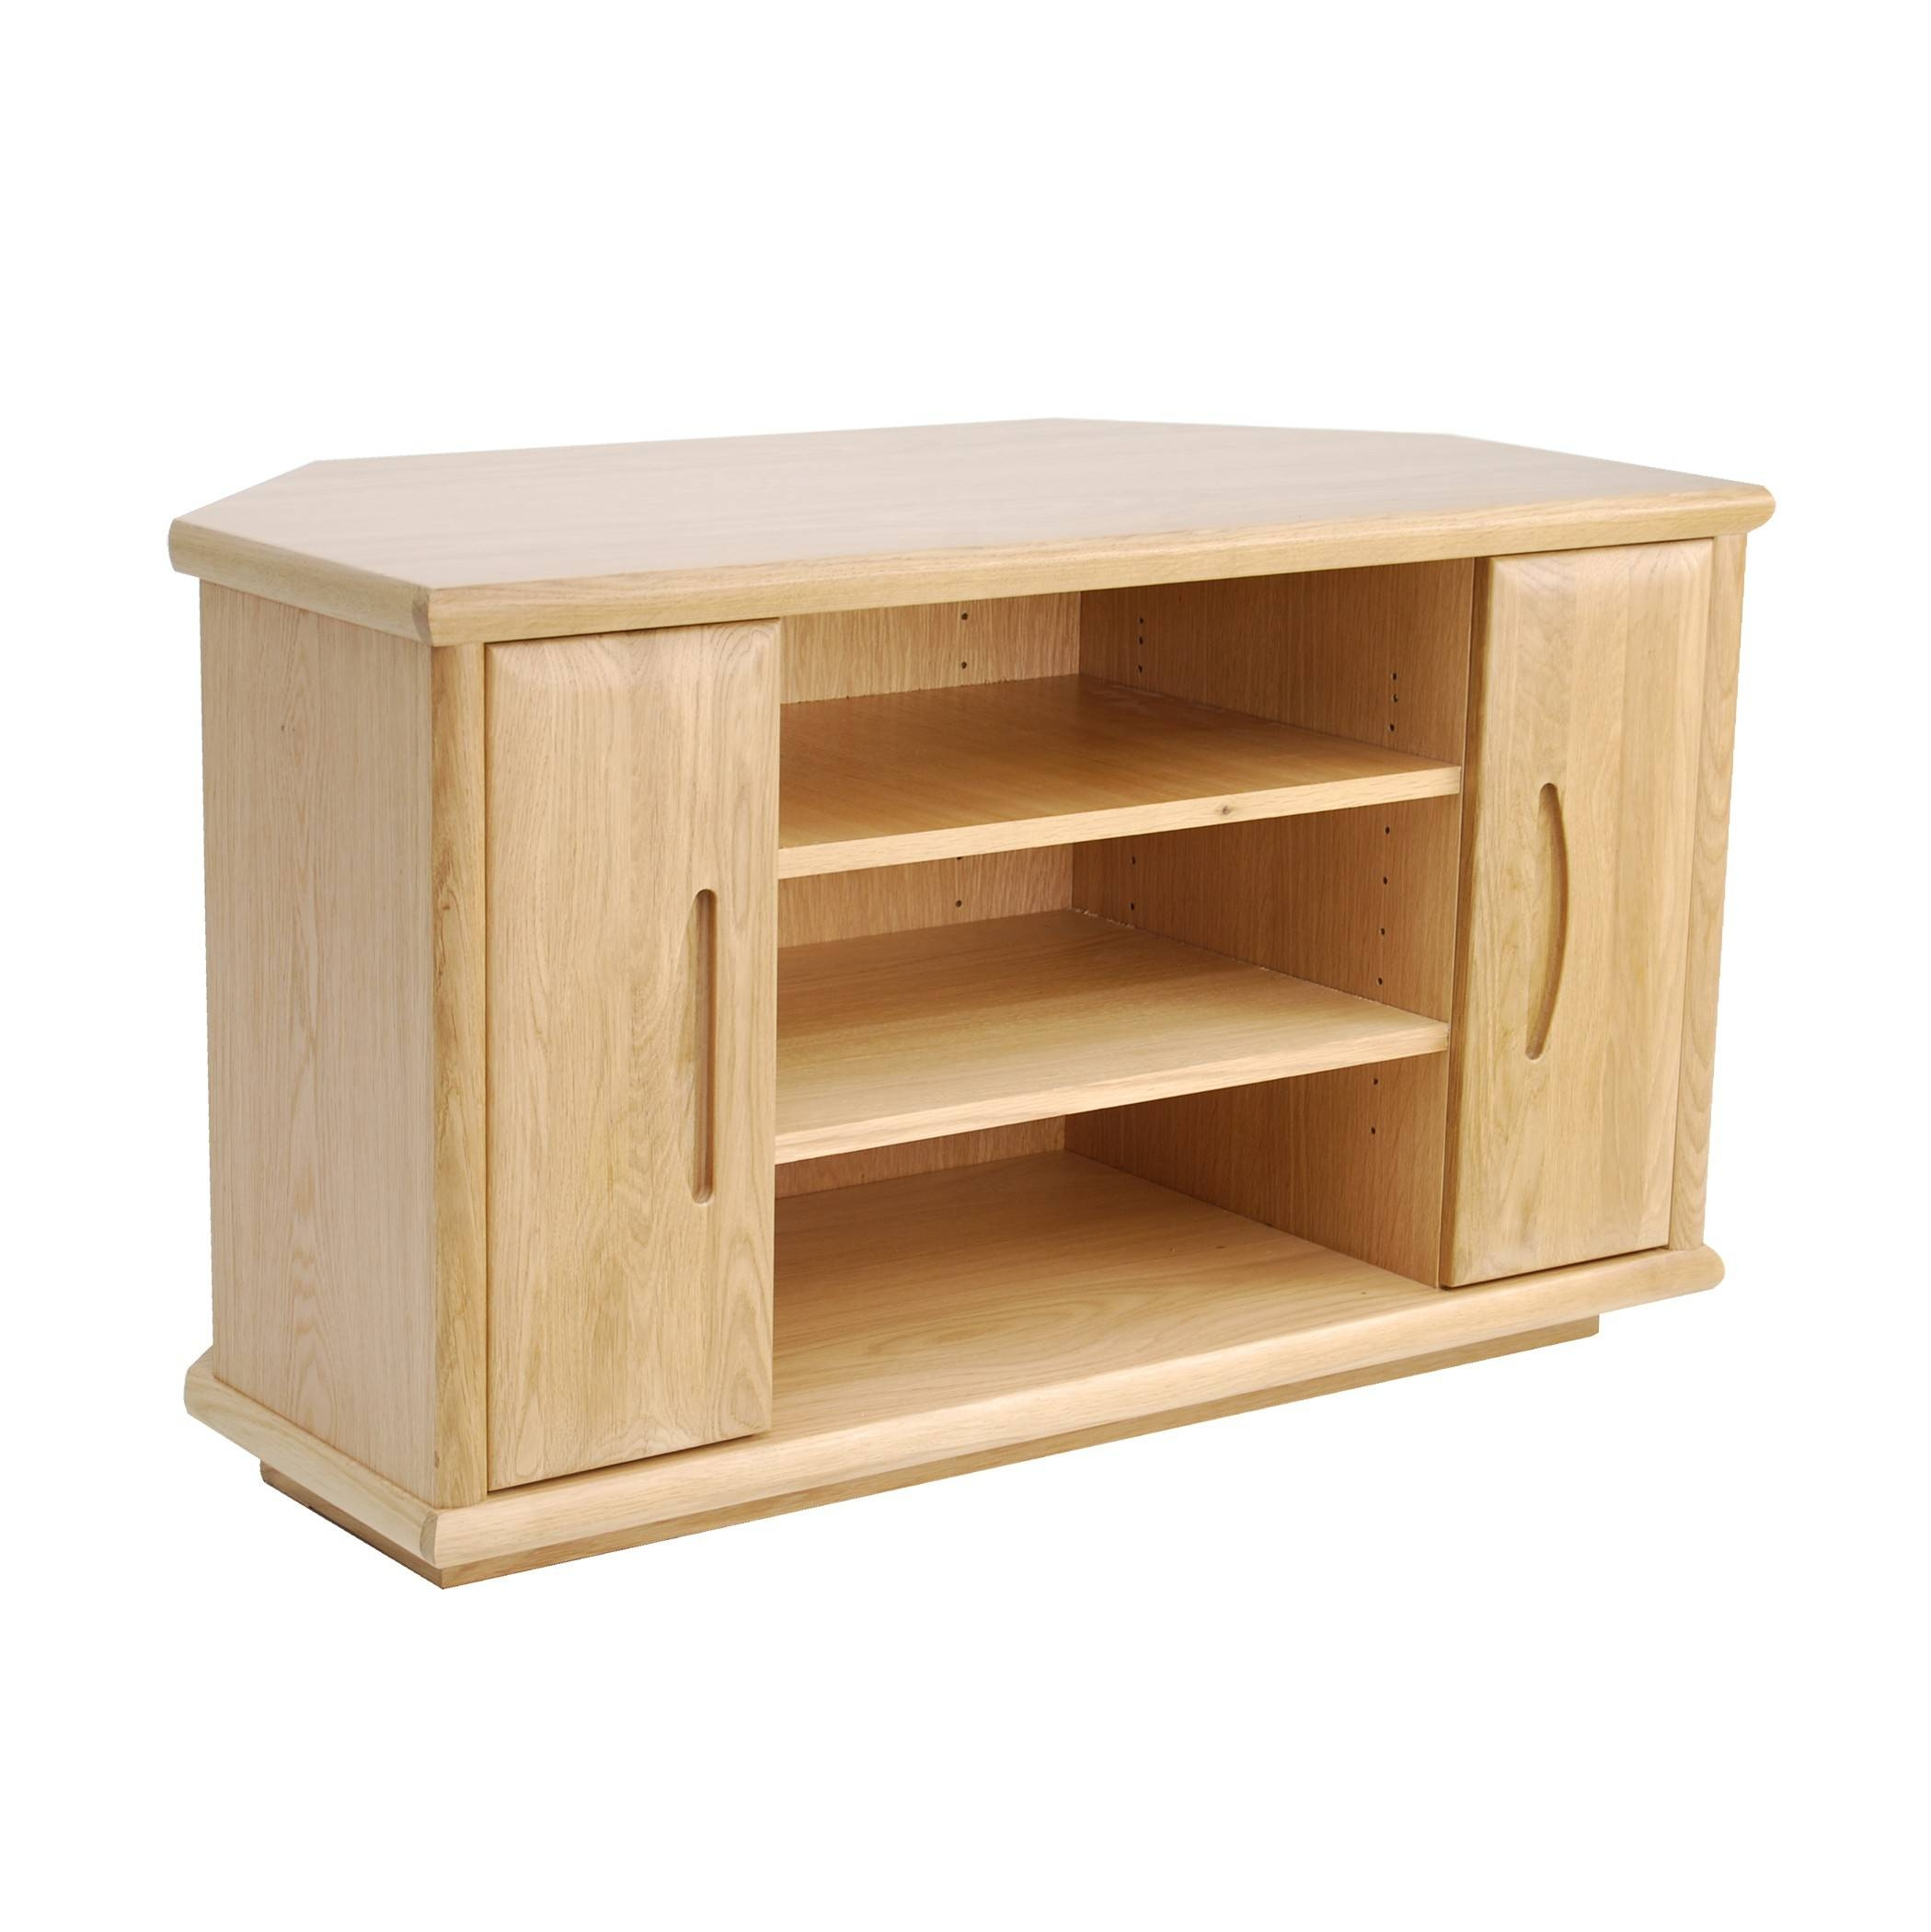 Oak Corner Tv Stand | Gola Furniture Uk Throughout Corner Tv Tables Stands (View 8 of 15)